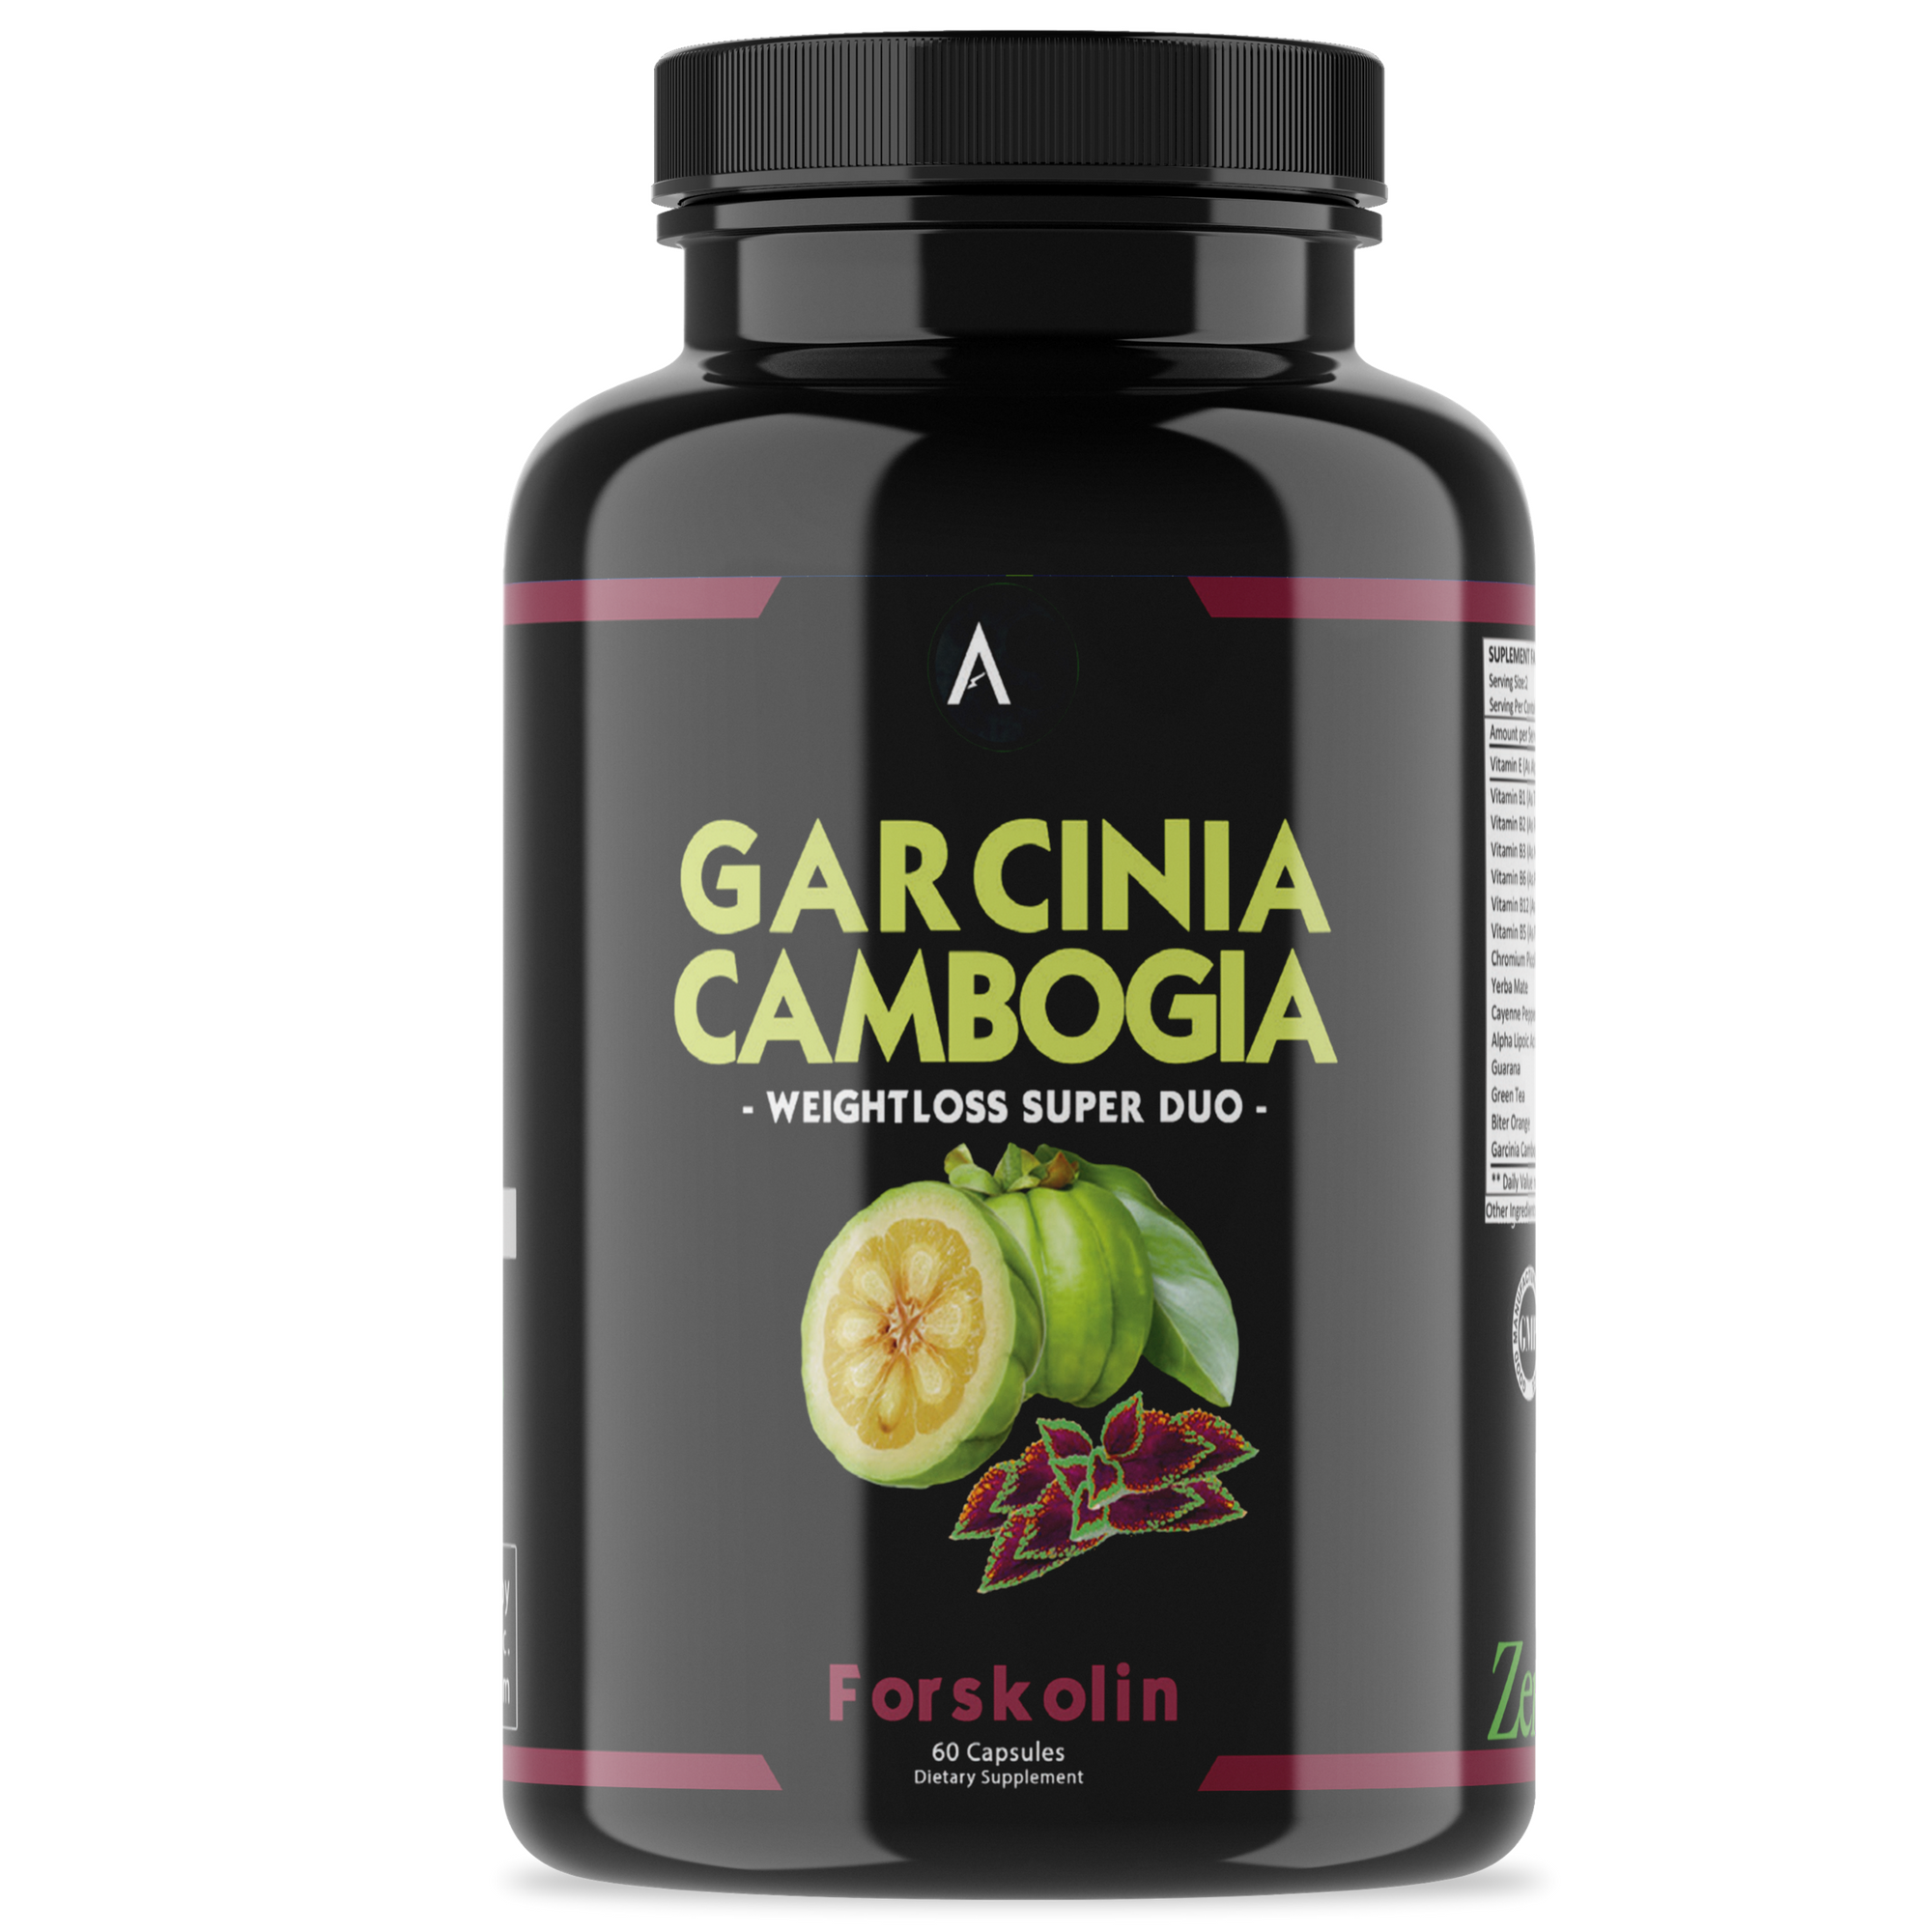 Angry Supplements Garcinia Cambogia with Forskolin Weight Loss Pills, 60 Ct